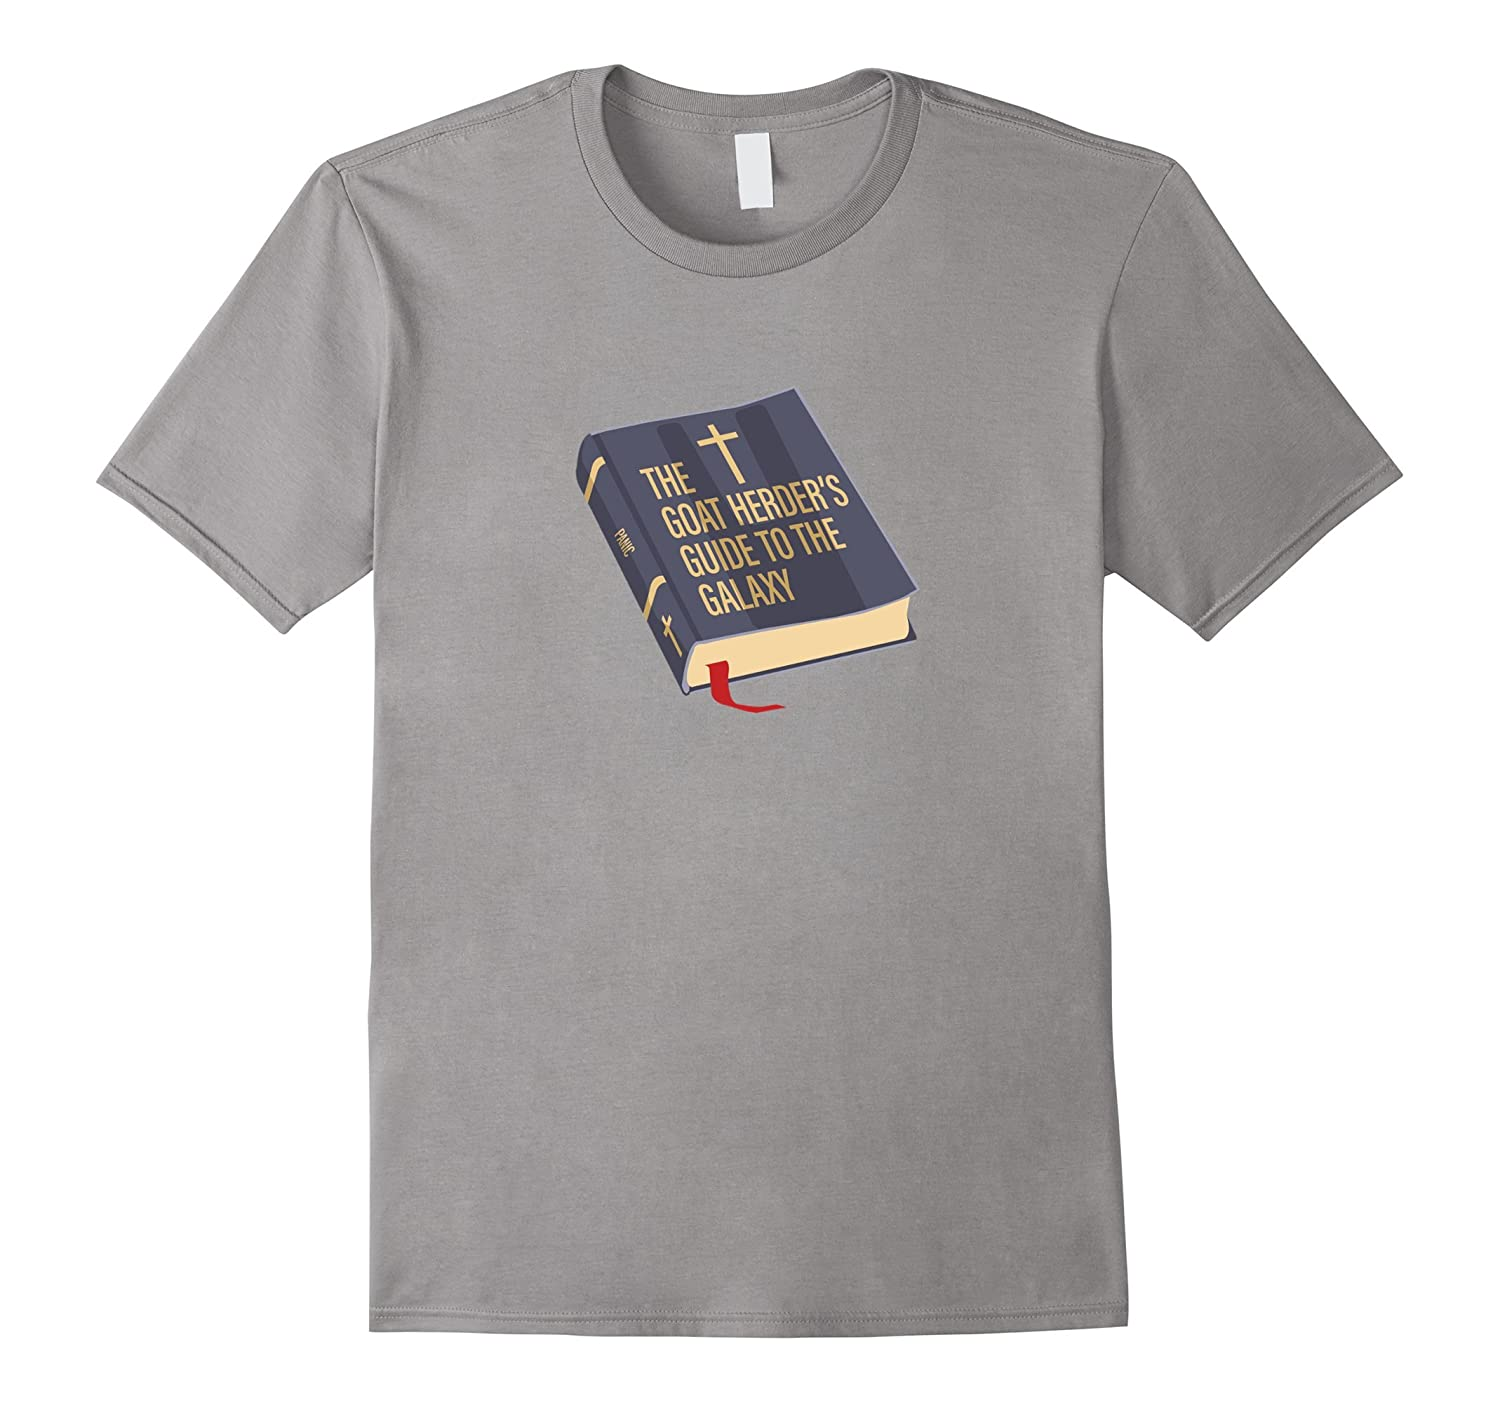 7034a48be Funny Atheism T-Shirt: Goat Herder's Guide – Atheist T Shirt-Rose ...